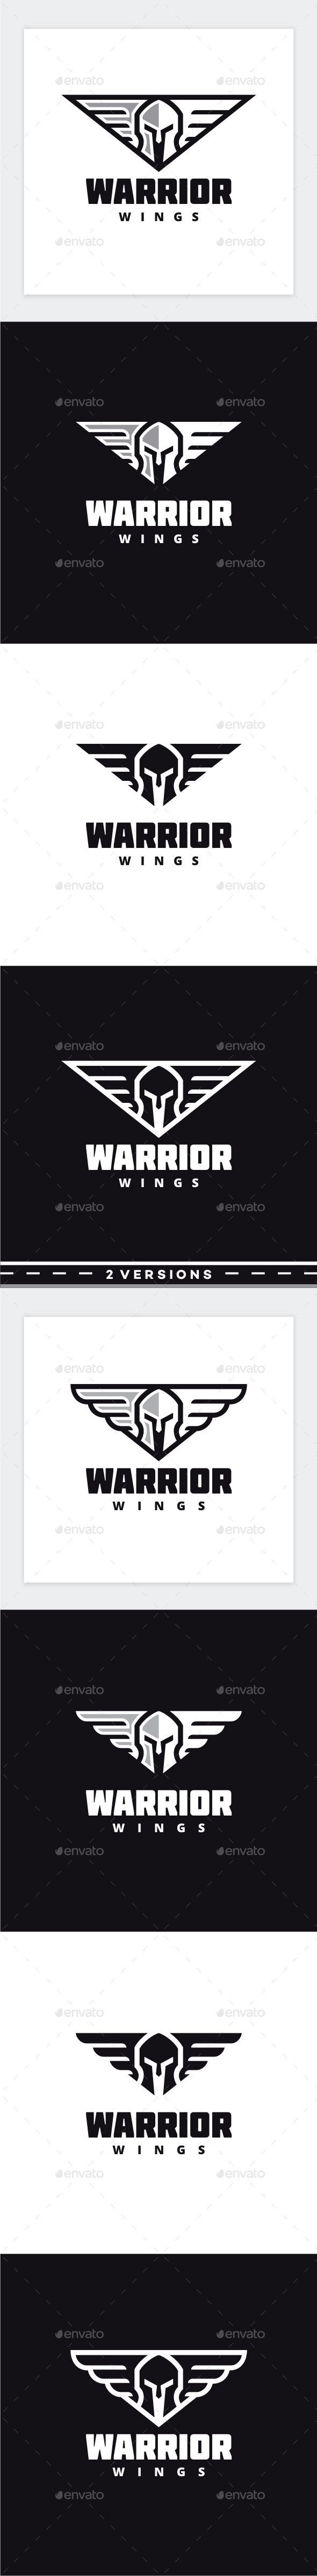 Warrior Logo — Photoshop PSD #spartan #guardian • Available here → https://graphicriver.net/item/warrior-logo/17528630?ref=pxcr